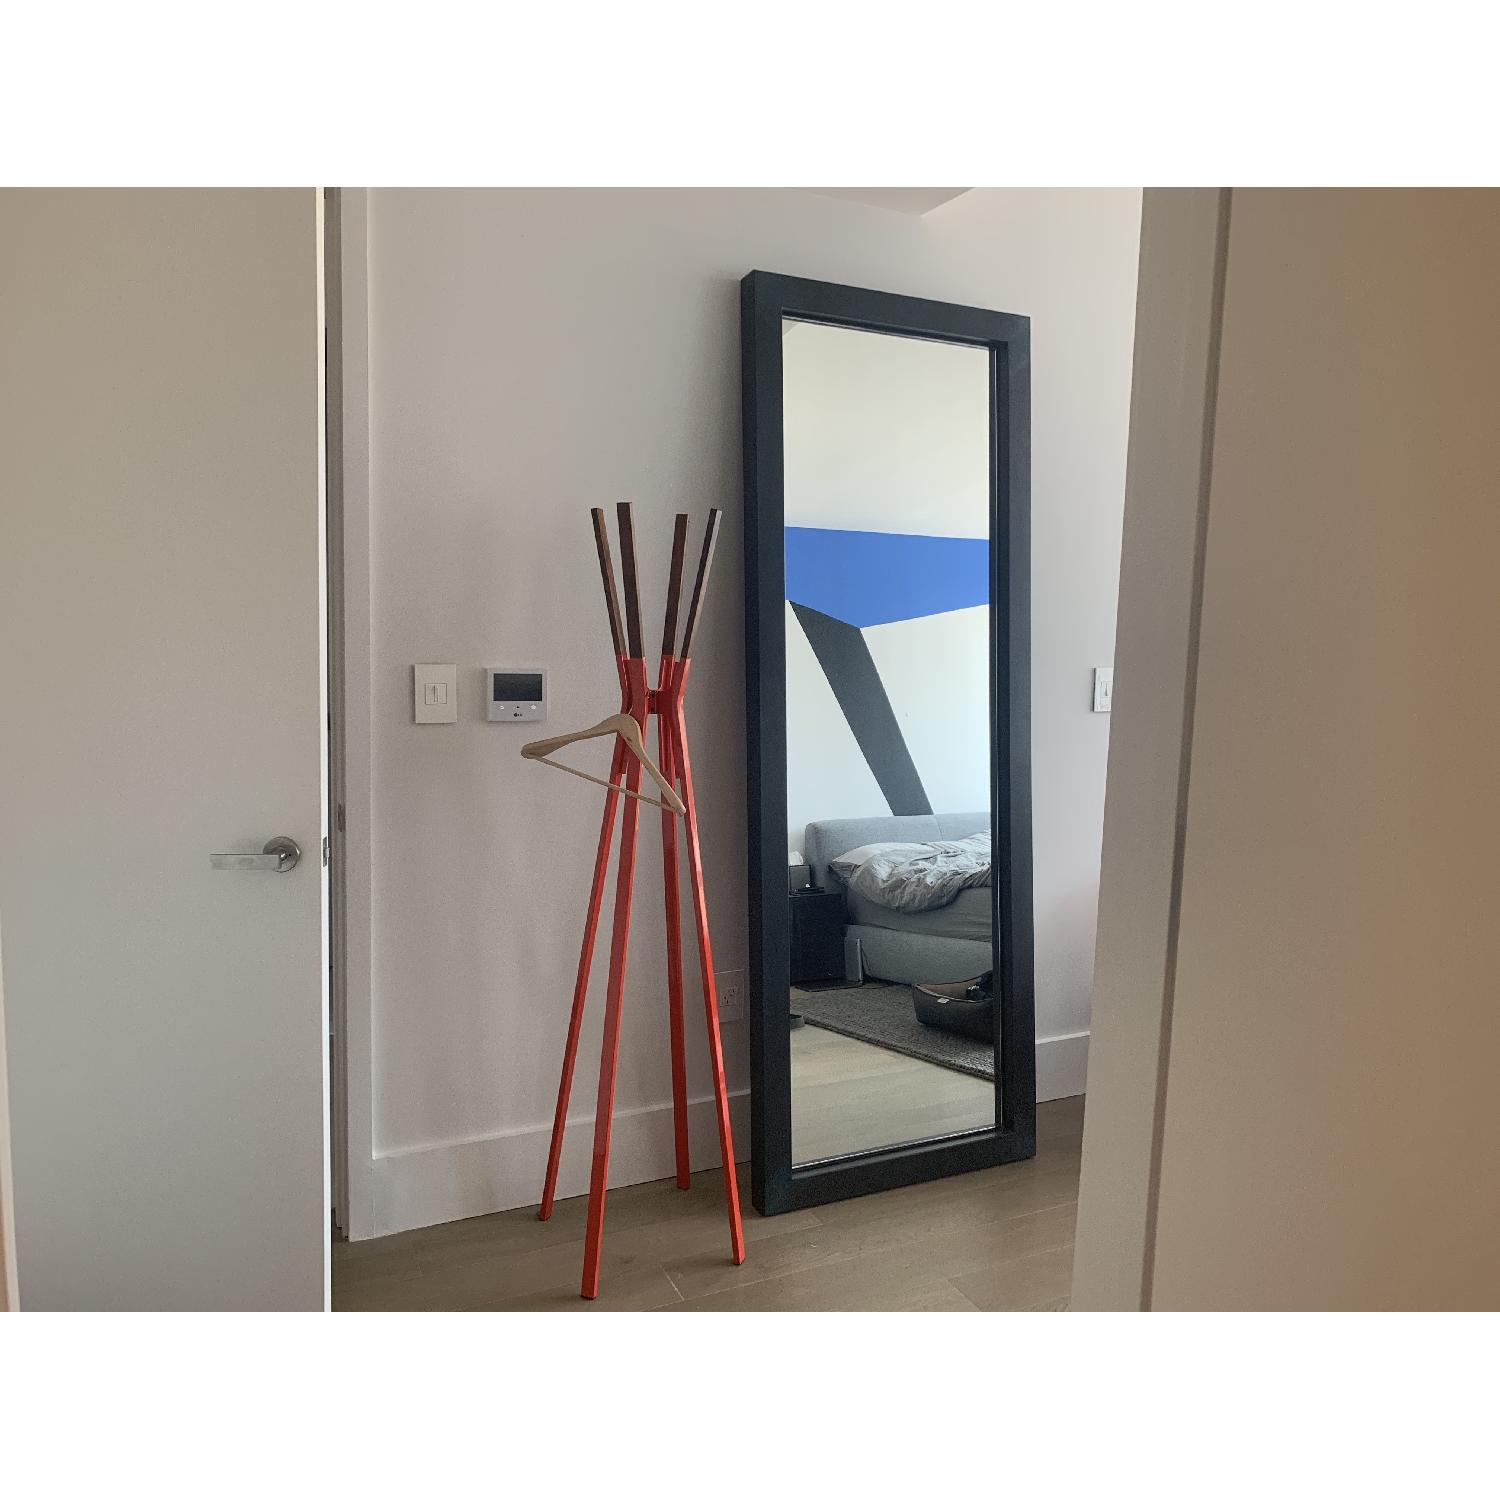 Room & Board Industry Leaning Mirror in Natural Steel - image-1